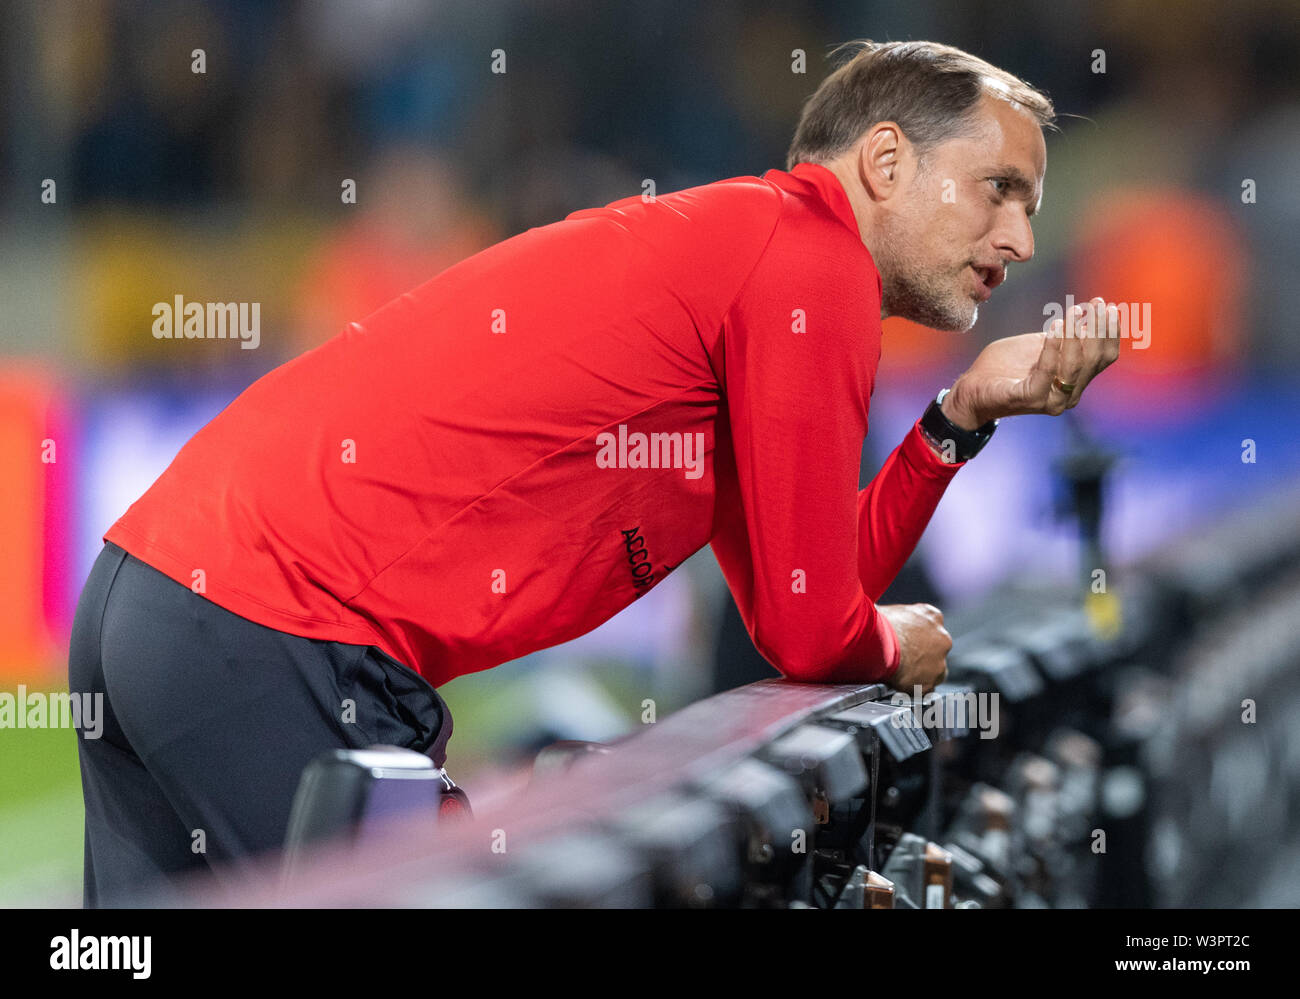 Dresden, Germany. 16th July, 2019. Football, test match, SG Dynamo Dresden - Paris Saint-Germain, in the Rudolf-Harbig-Stadium. Paris coach Thomas Tuchel gestures. Credit: Robert Michael/dpa-Zentralbild/dpa - IMPORTANT NOTE: In accordance with the requirements of the DFL Deutsche Fußball Liga or the DFB Deutscher Fußball-Bund, it is prohibited to use or have used photographs taken in the stadium and/or the match in the form of sequence images and/or video-like photo sequences./dpa/Alamy Live News - Stock Image